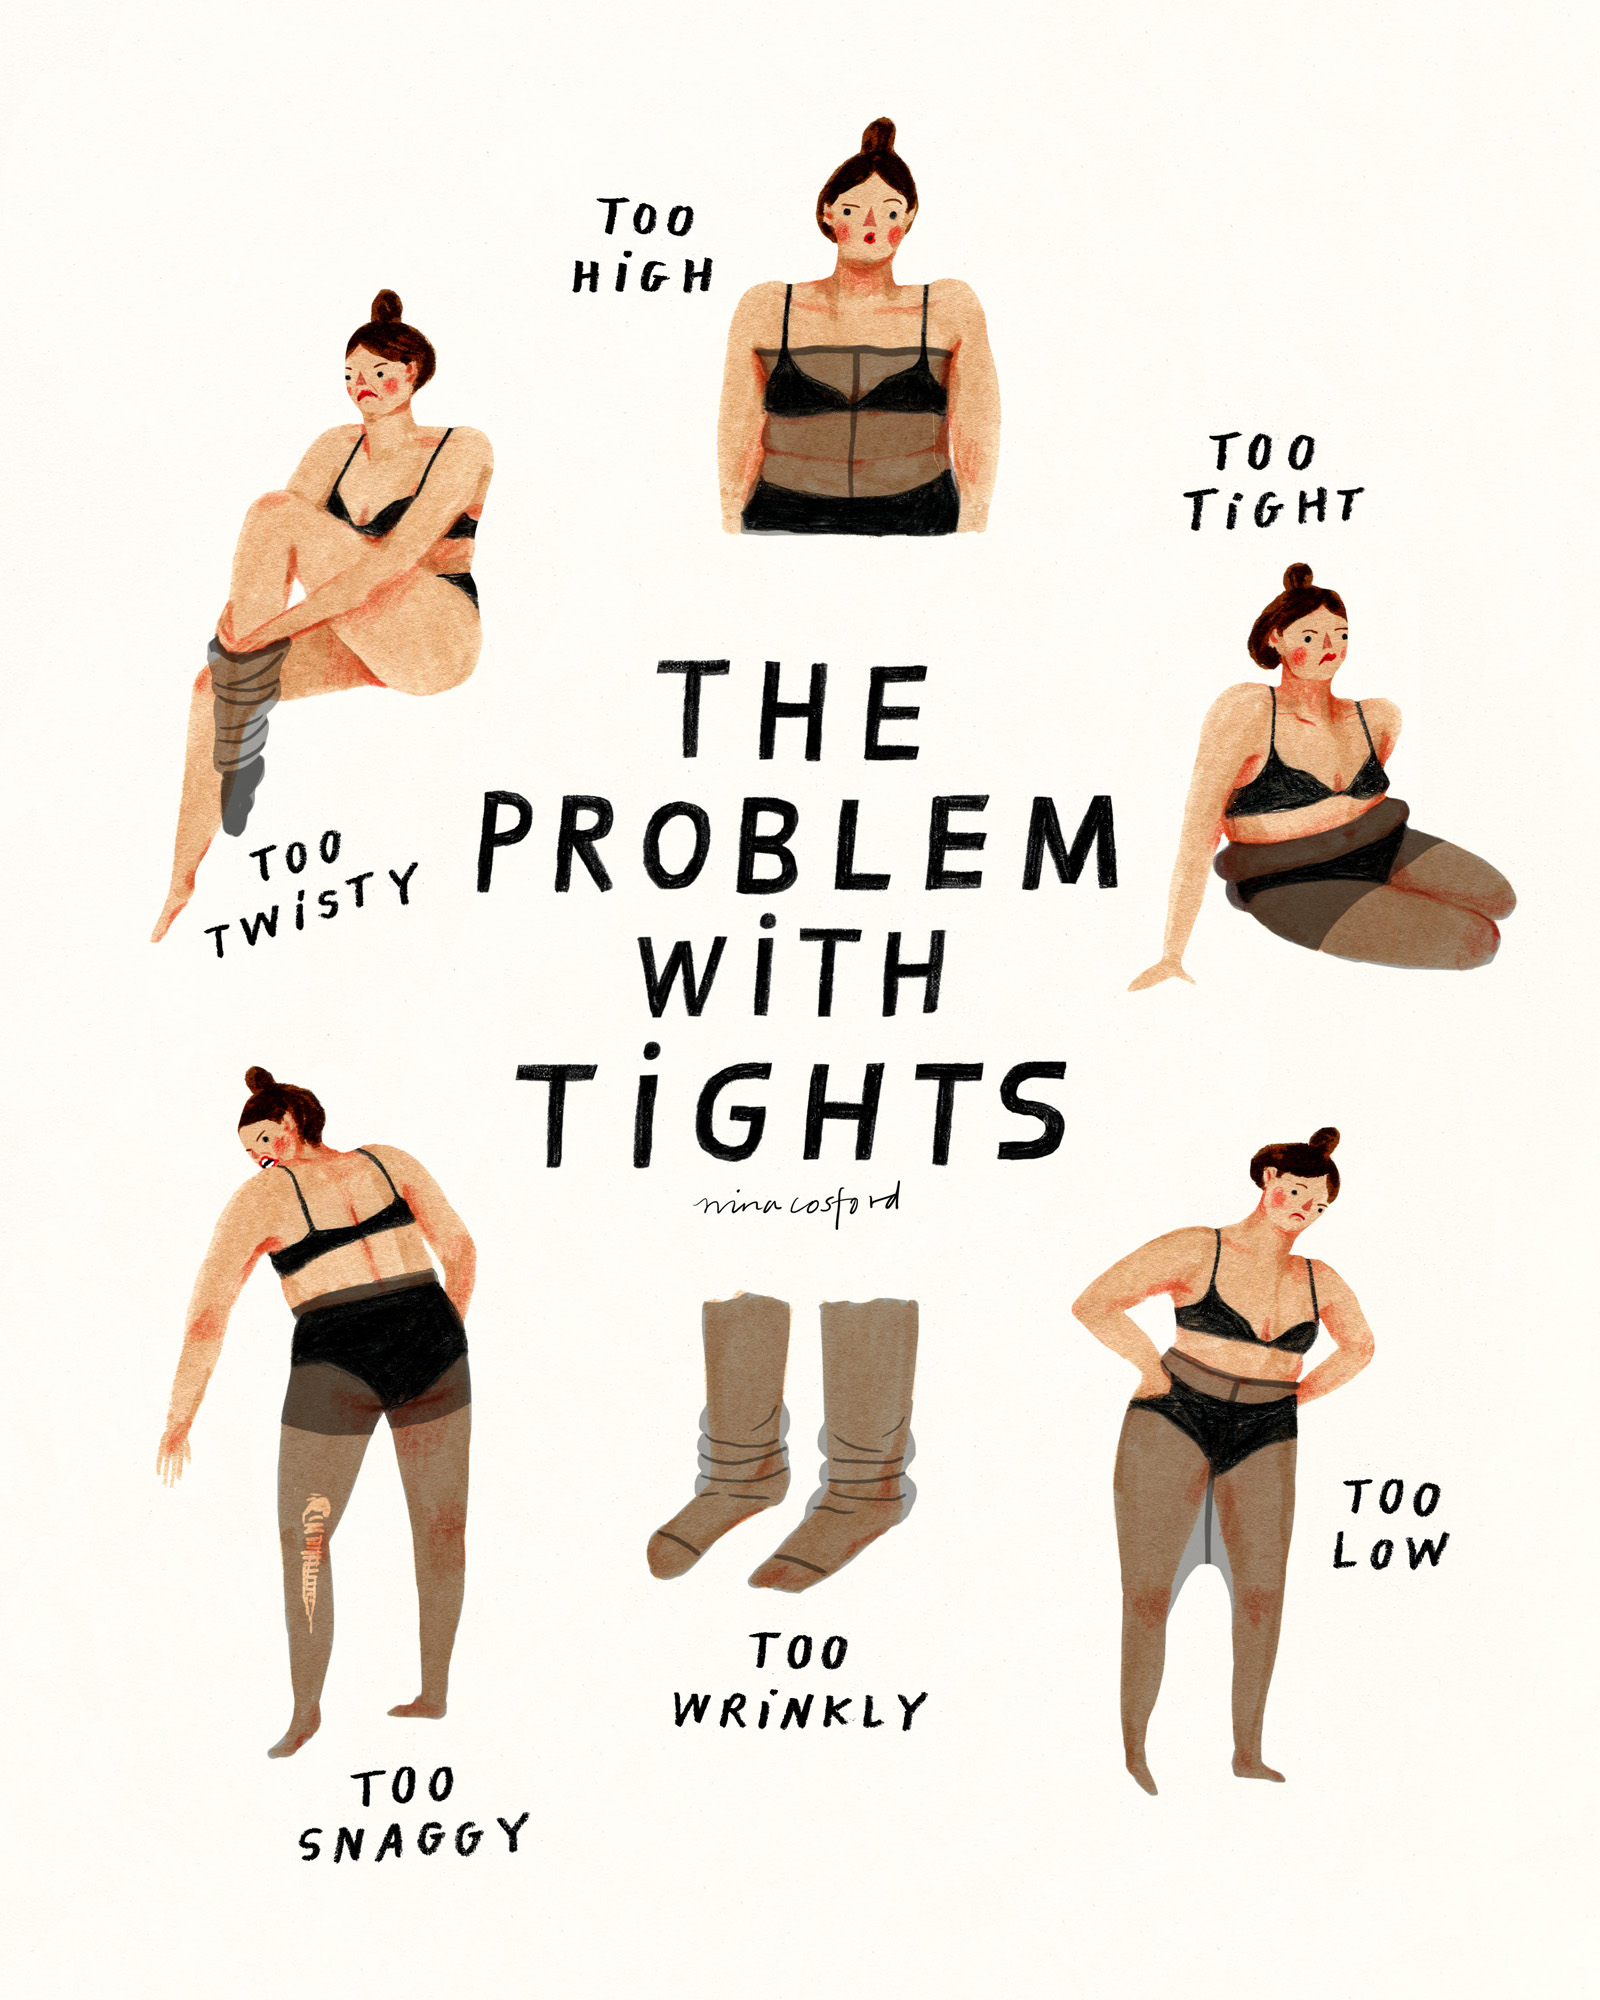 THE PROBLEM WITH TIGHTS